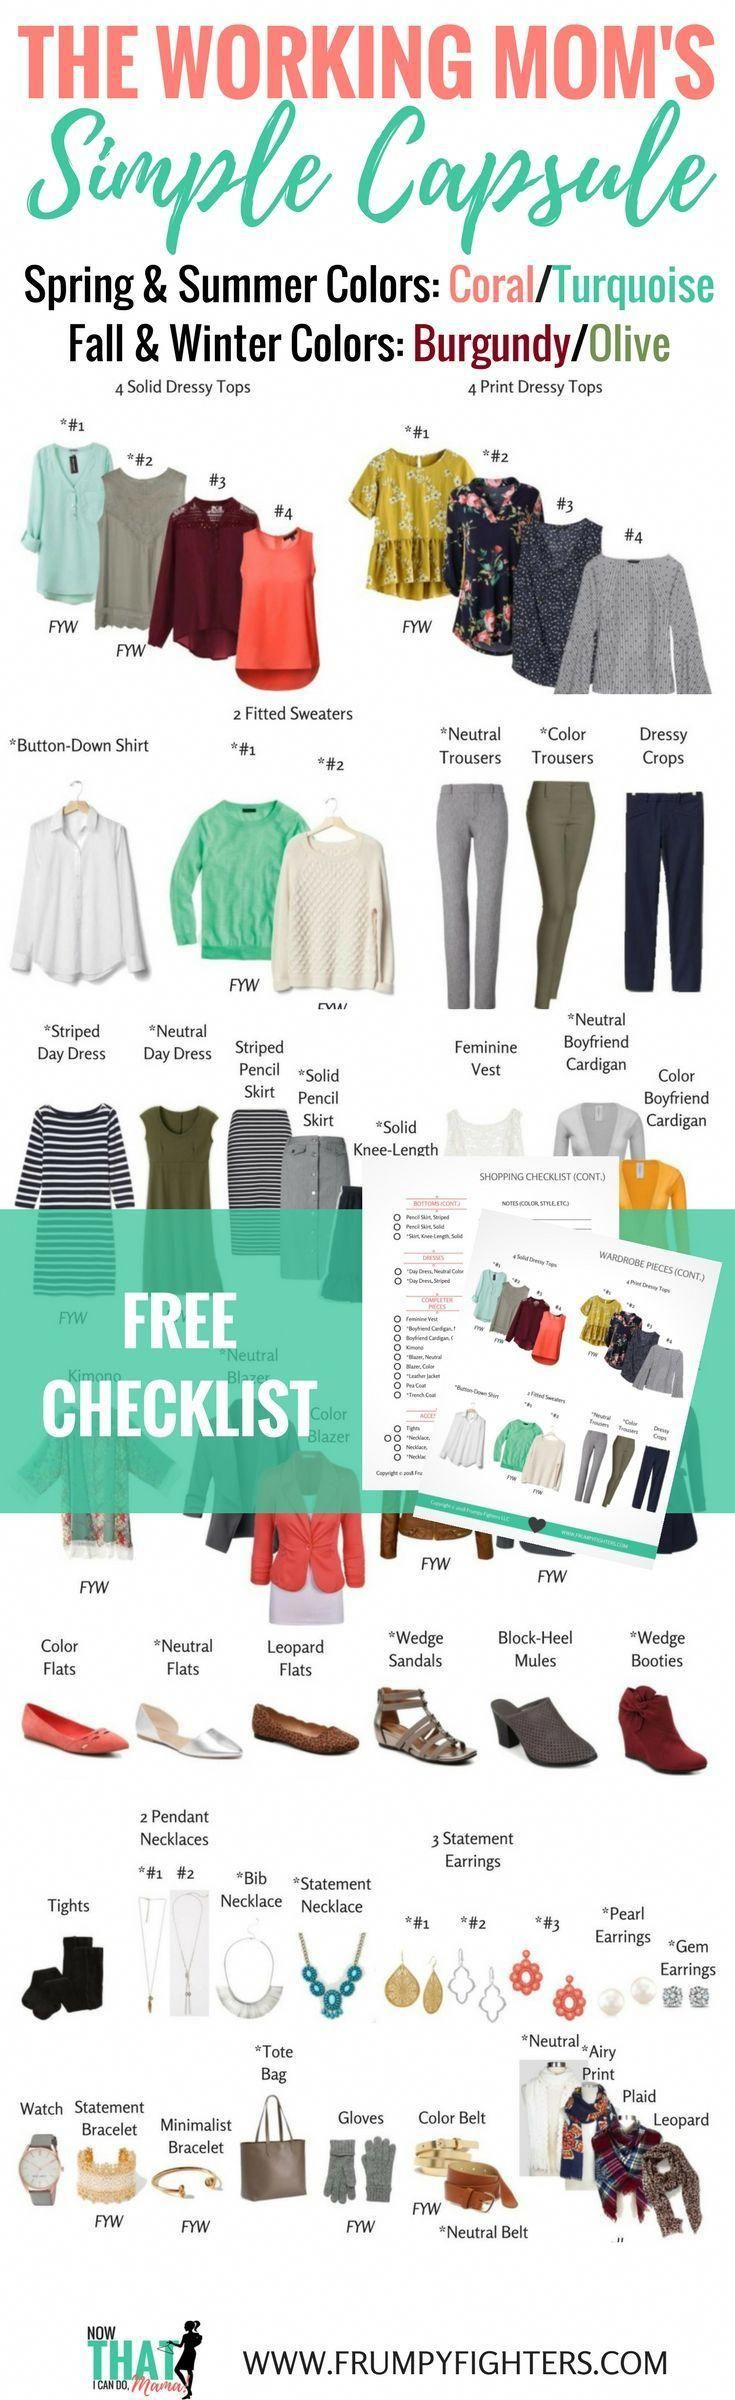 Simple, easy, & gorgeous wardrobe plan for working MOMS that covers all seasons! Designed for